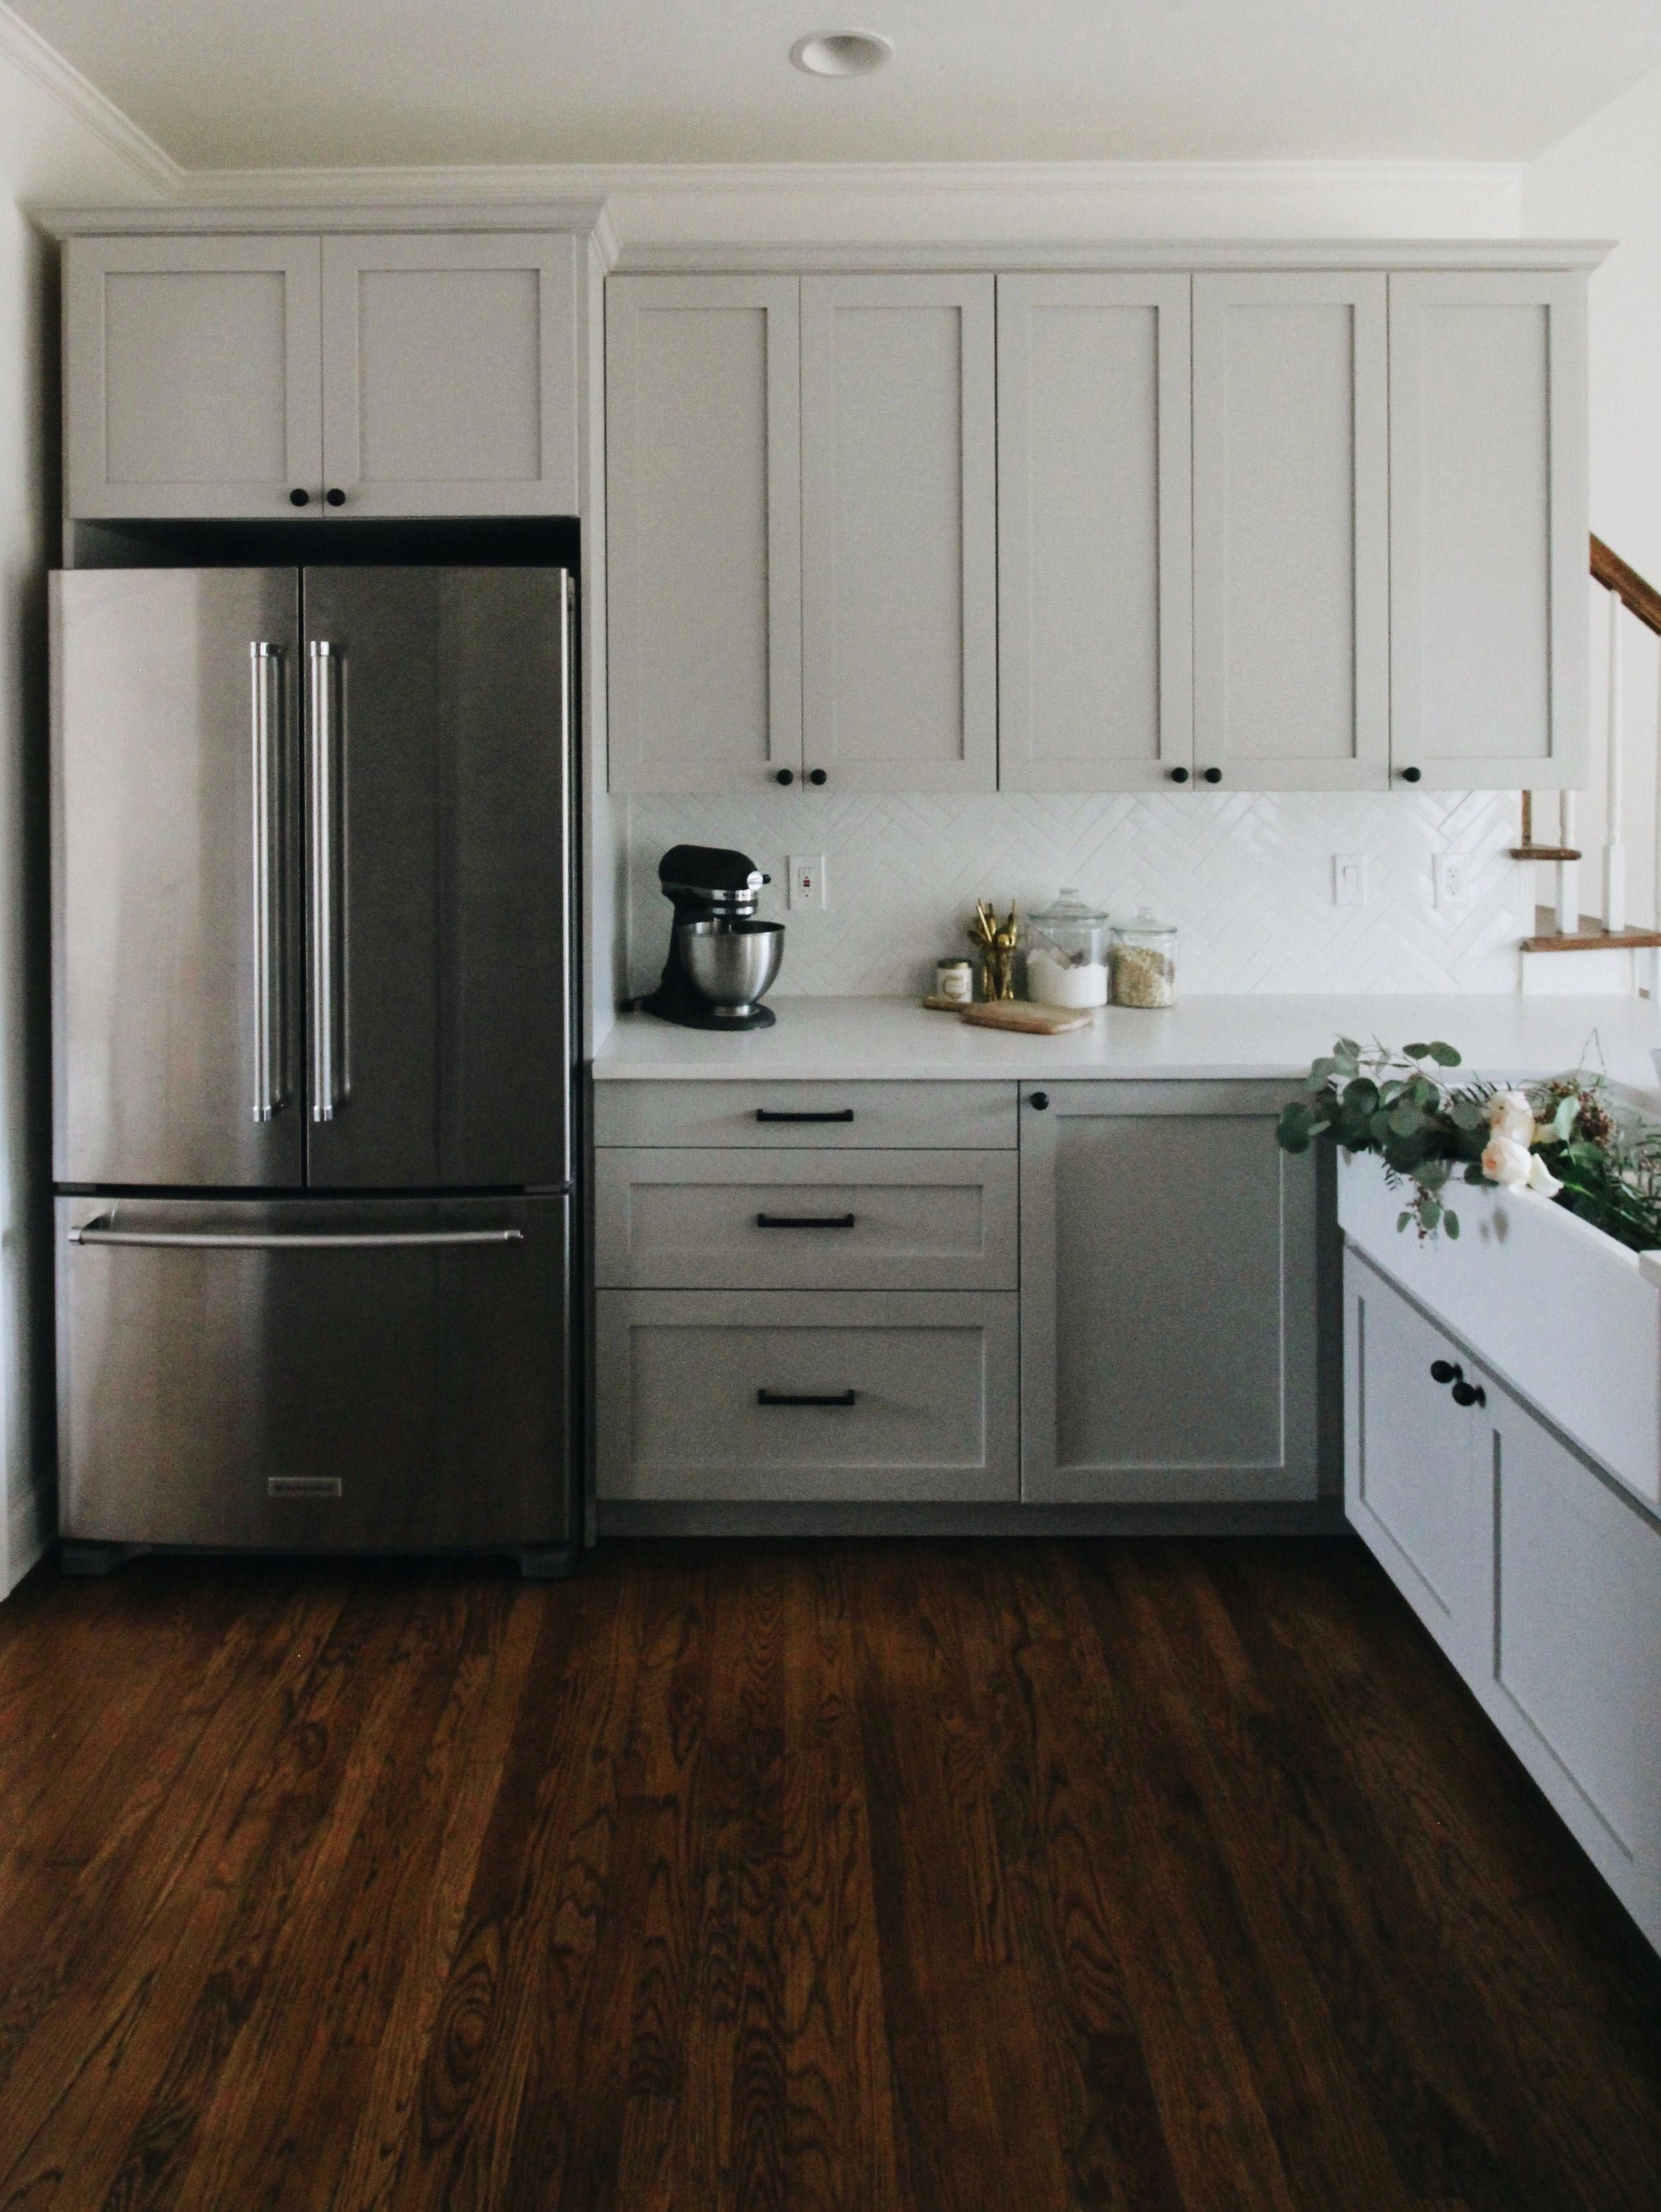 10 Kitchen And Home Decor Items Every 20 Something Needs: Ikea Kitchen Renovation // Garvin & Co. #kitchenrenovation